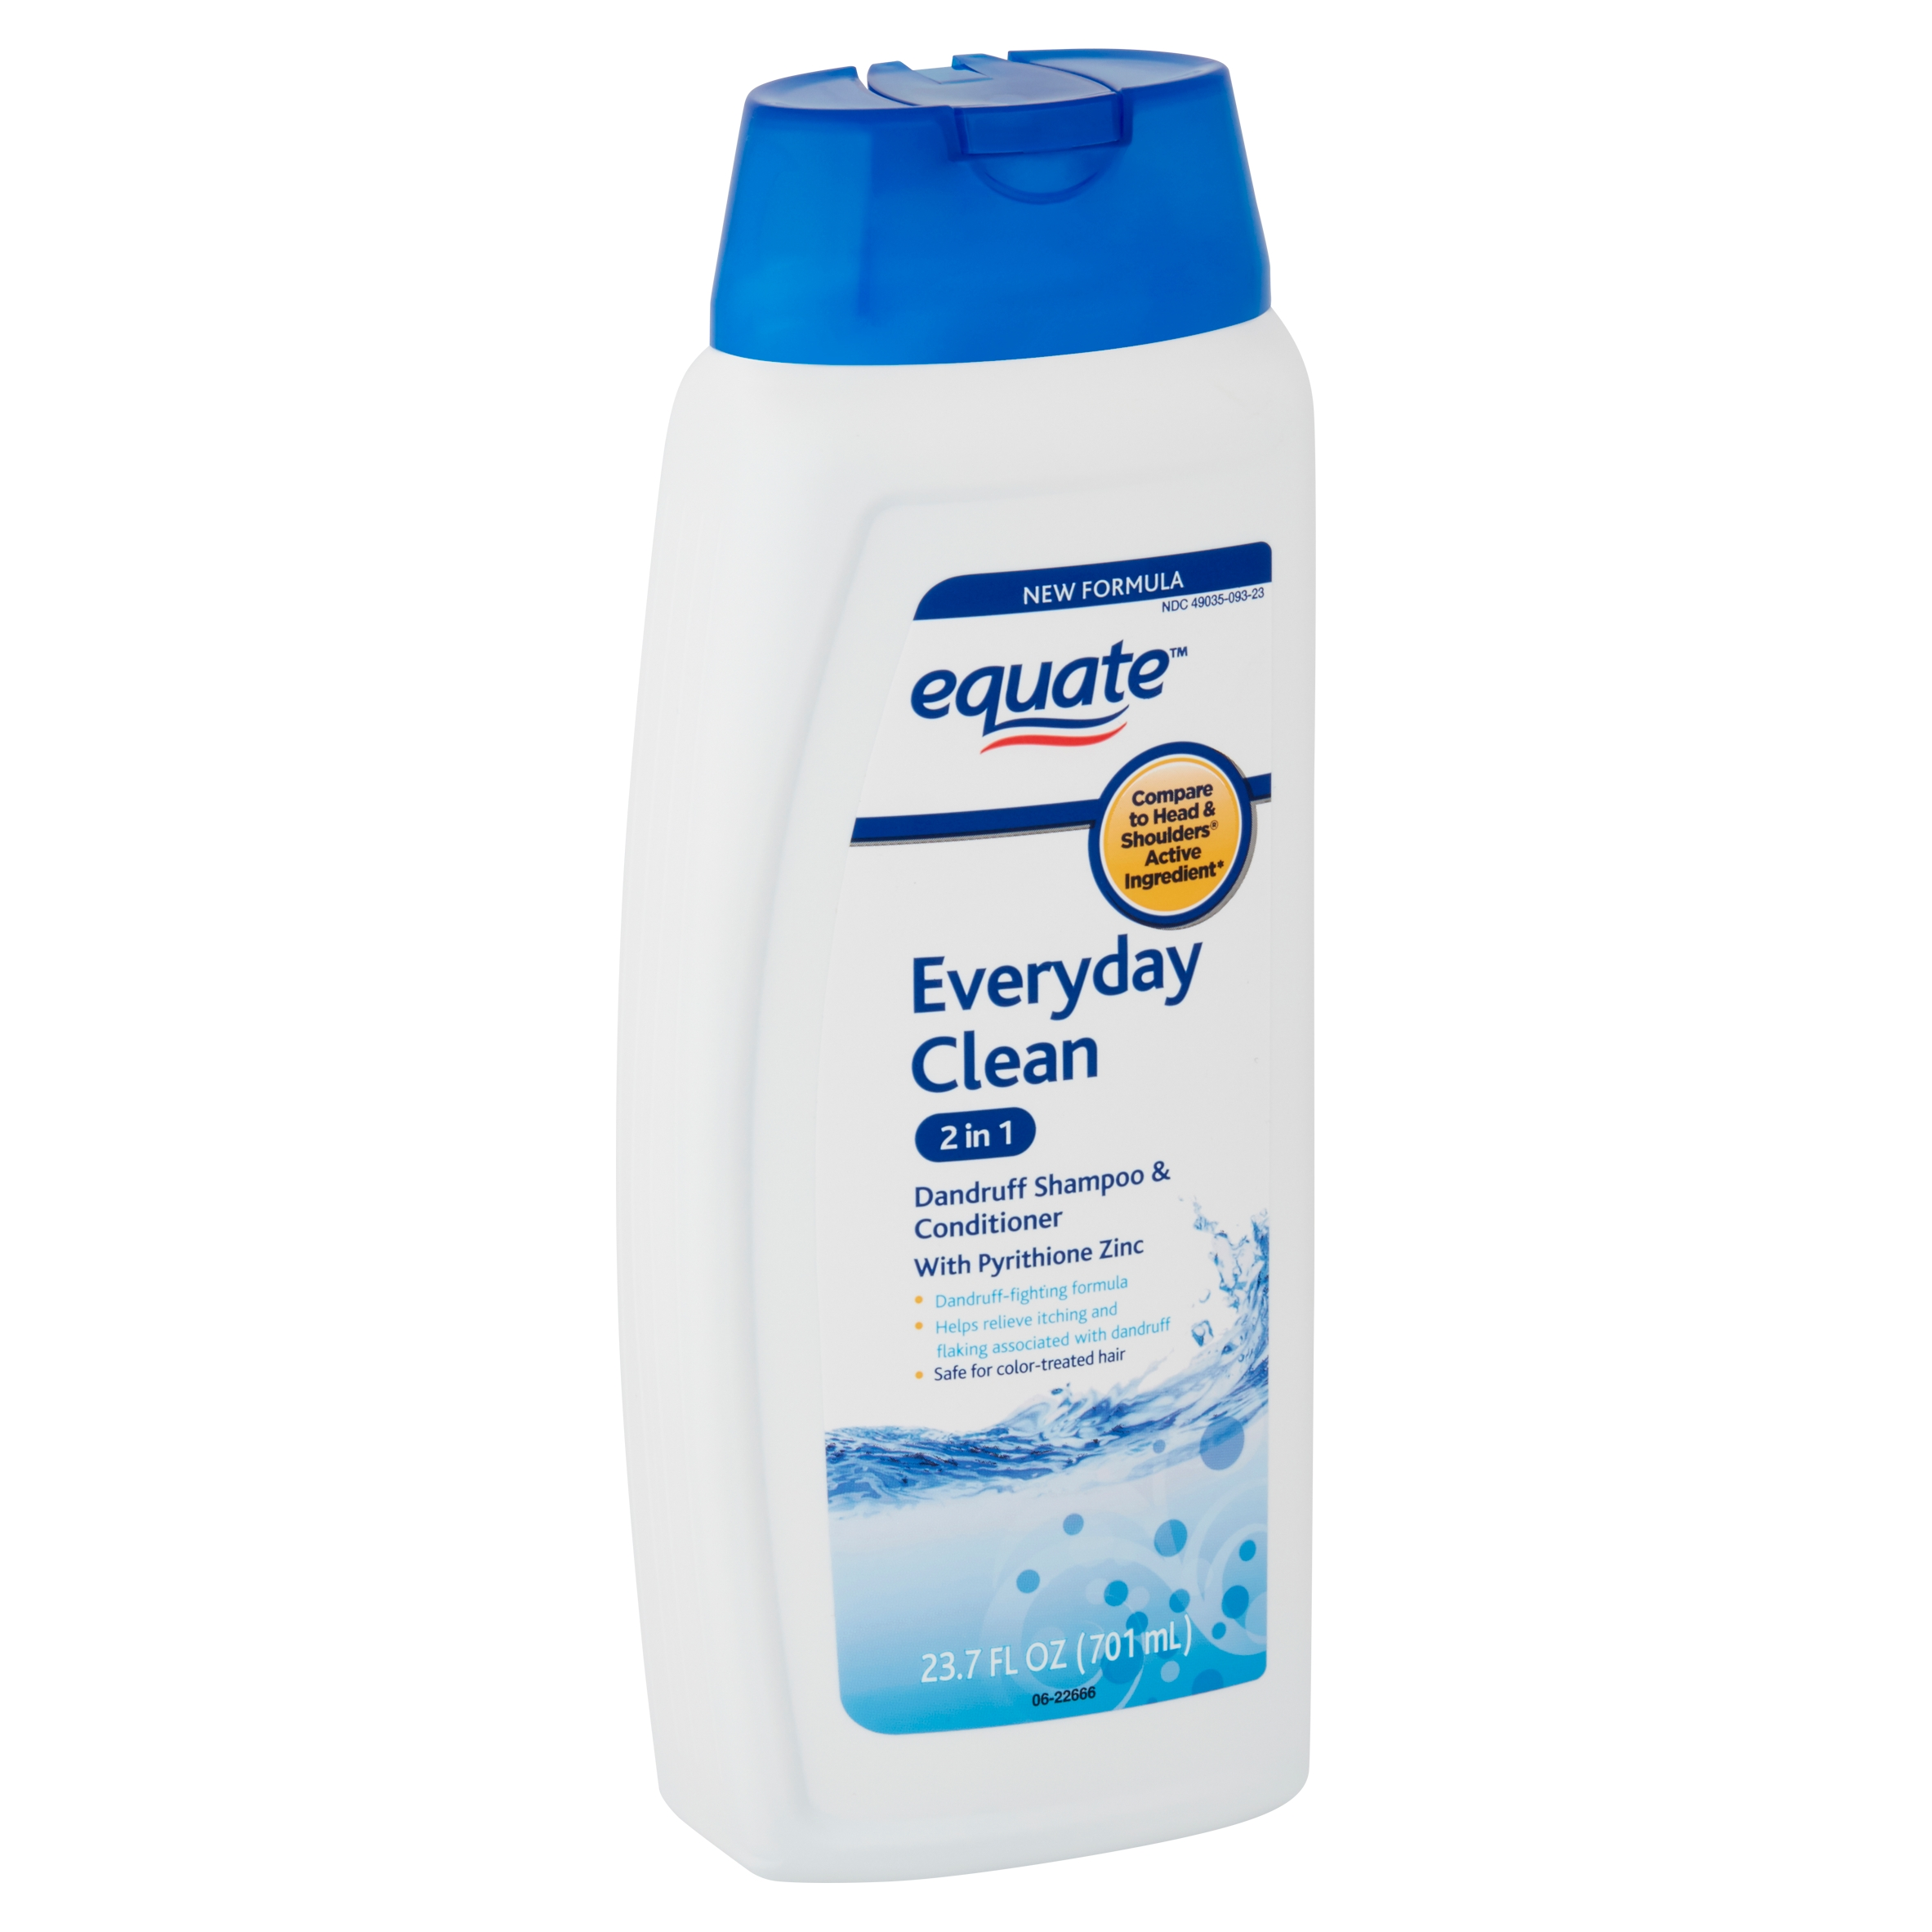 Equate Everyday Clean 2 in 1 Dandruff Shampoo & Conditioner, 23.7 fl oz